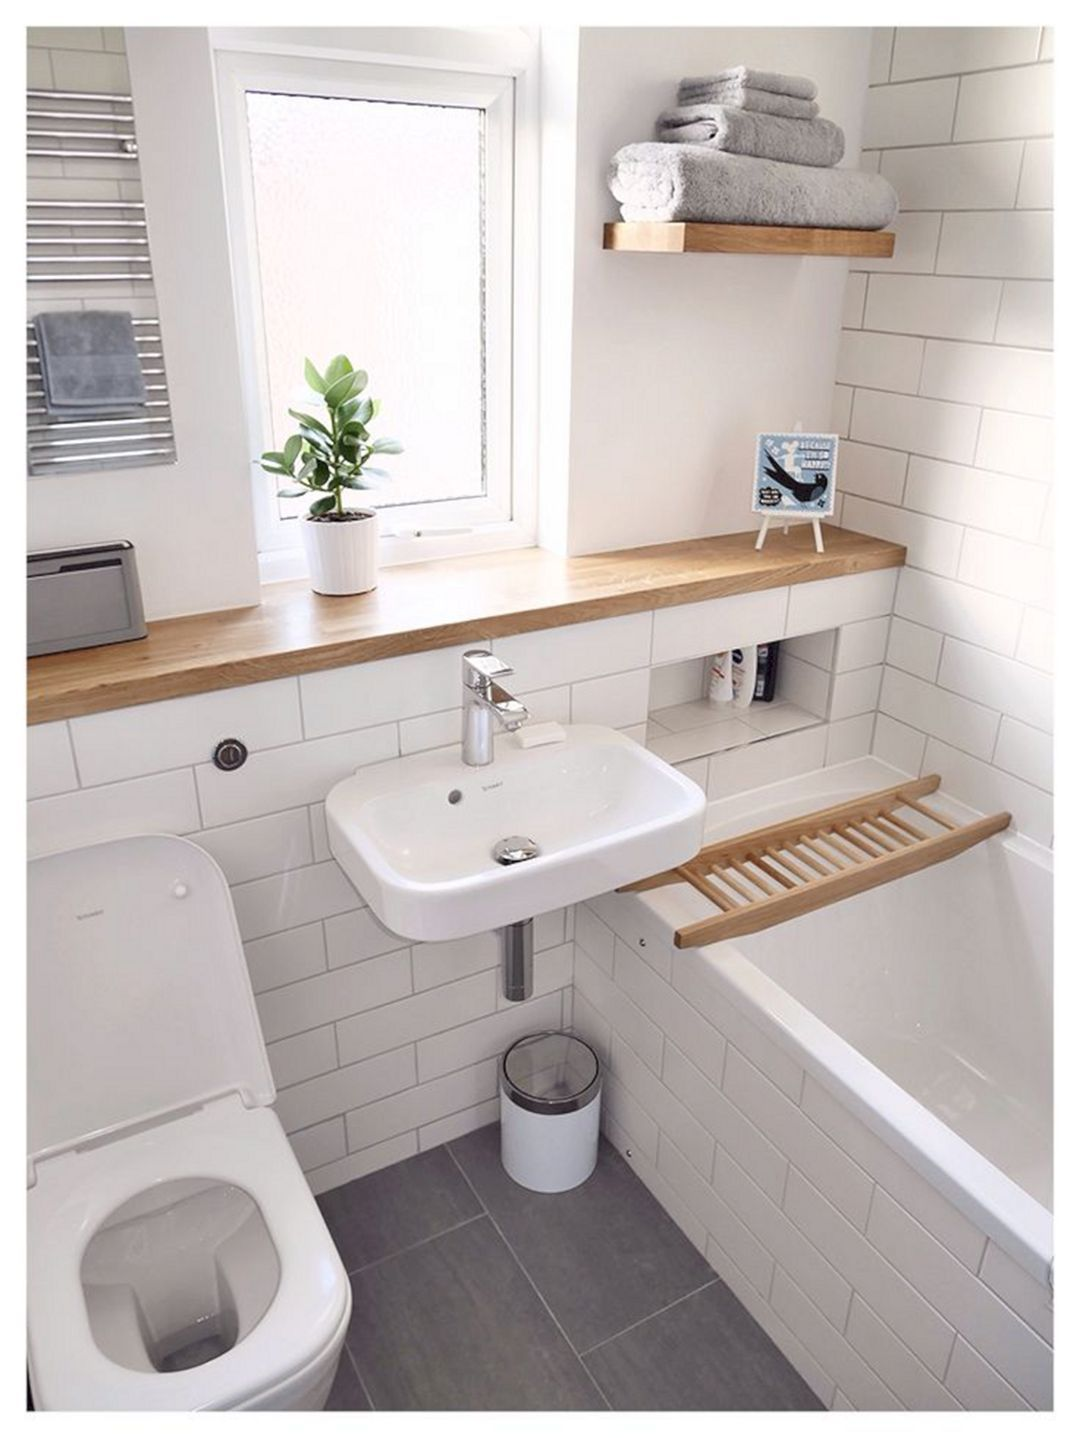 10+ Best Small Bathroom Ideas on a Budget | Bewitching Bathrooms ...